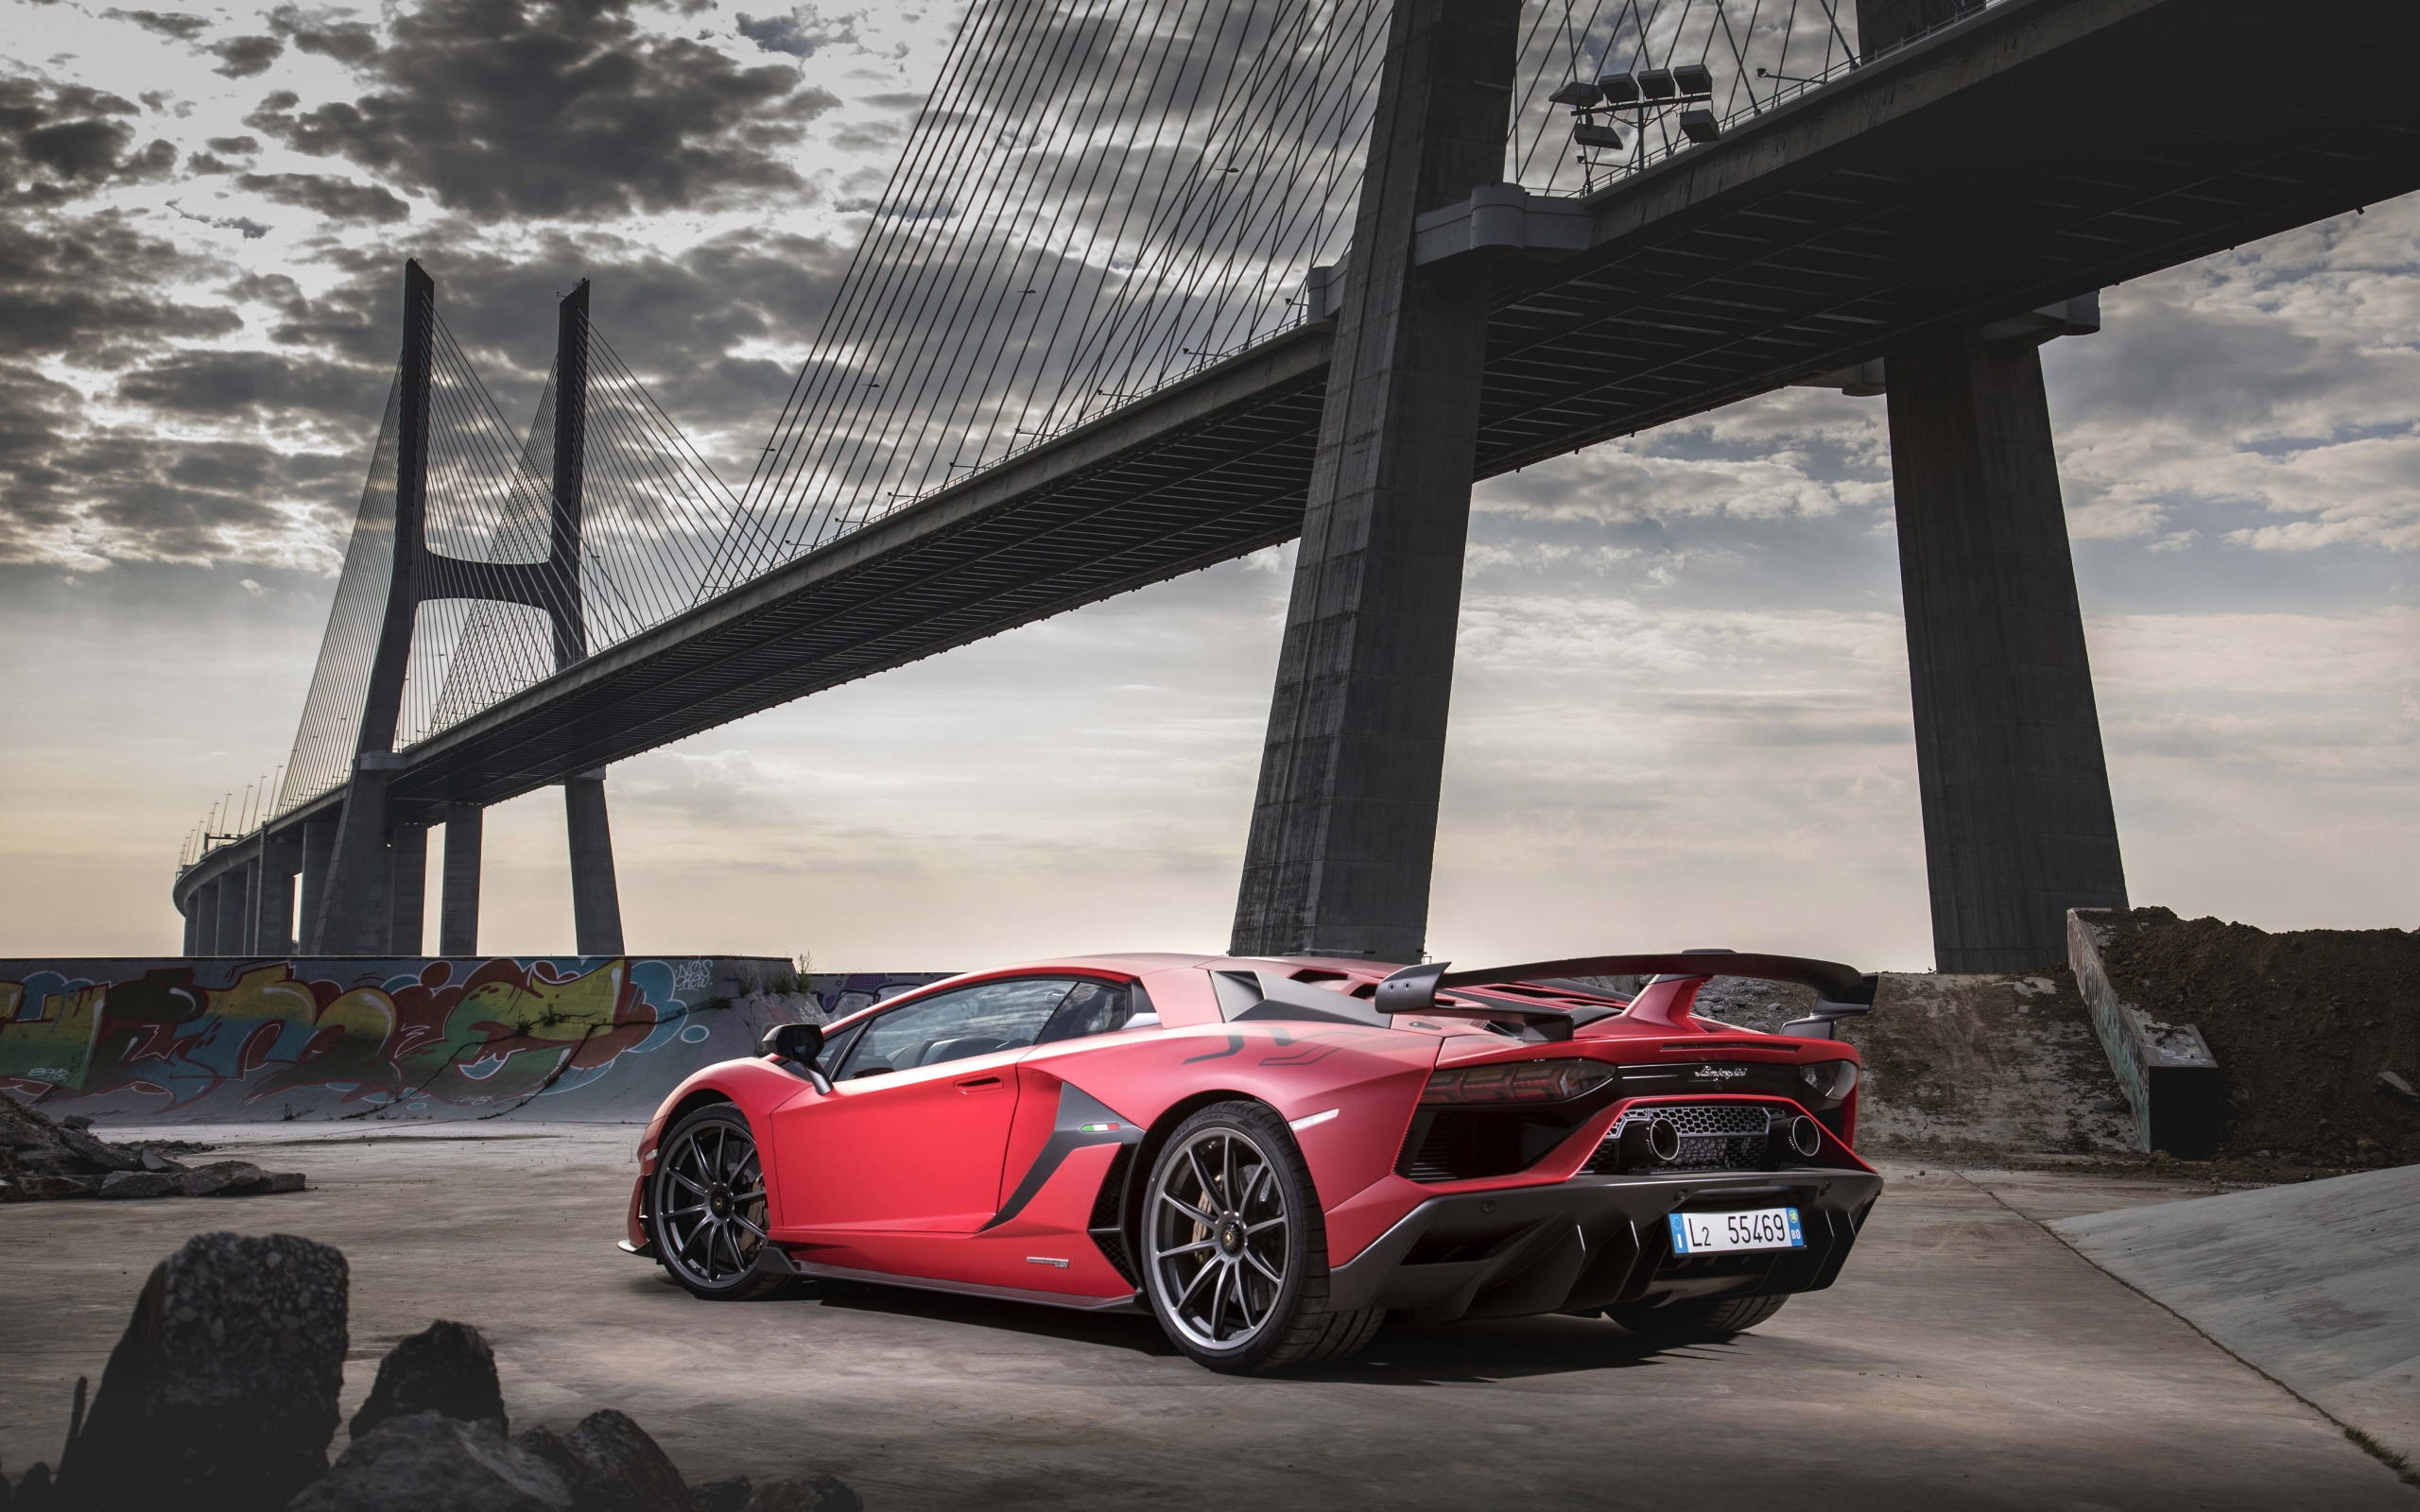 Wallpaper Of Lamborghini Aventador Svj Red Car Sportcar Background Hd Image